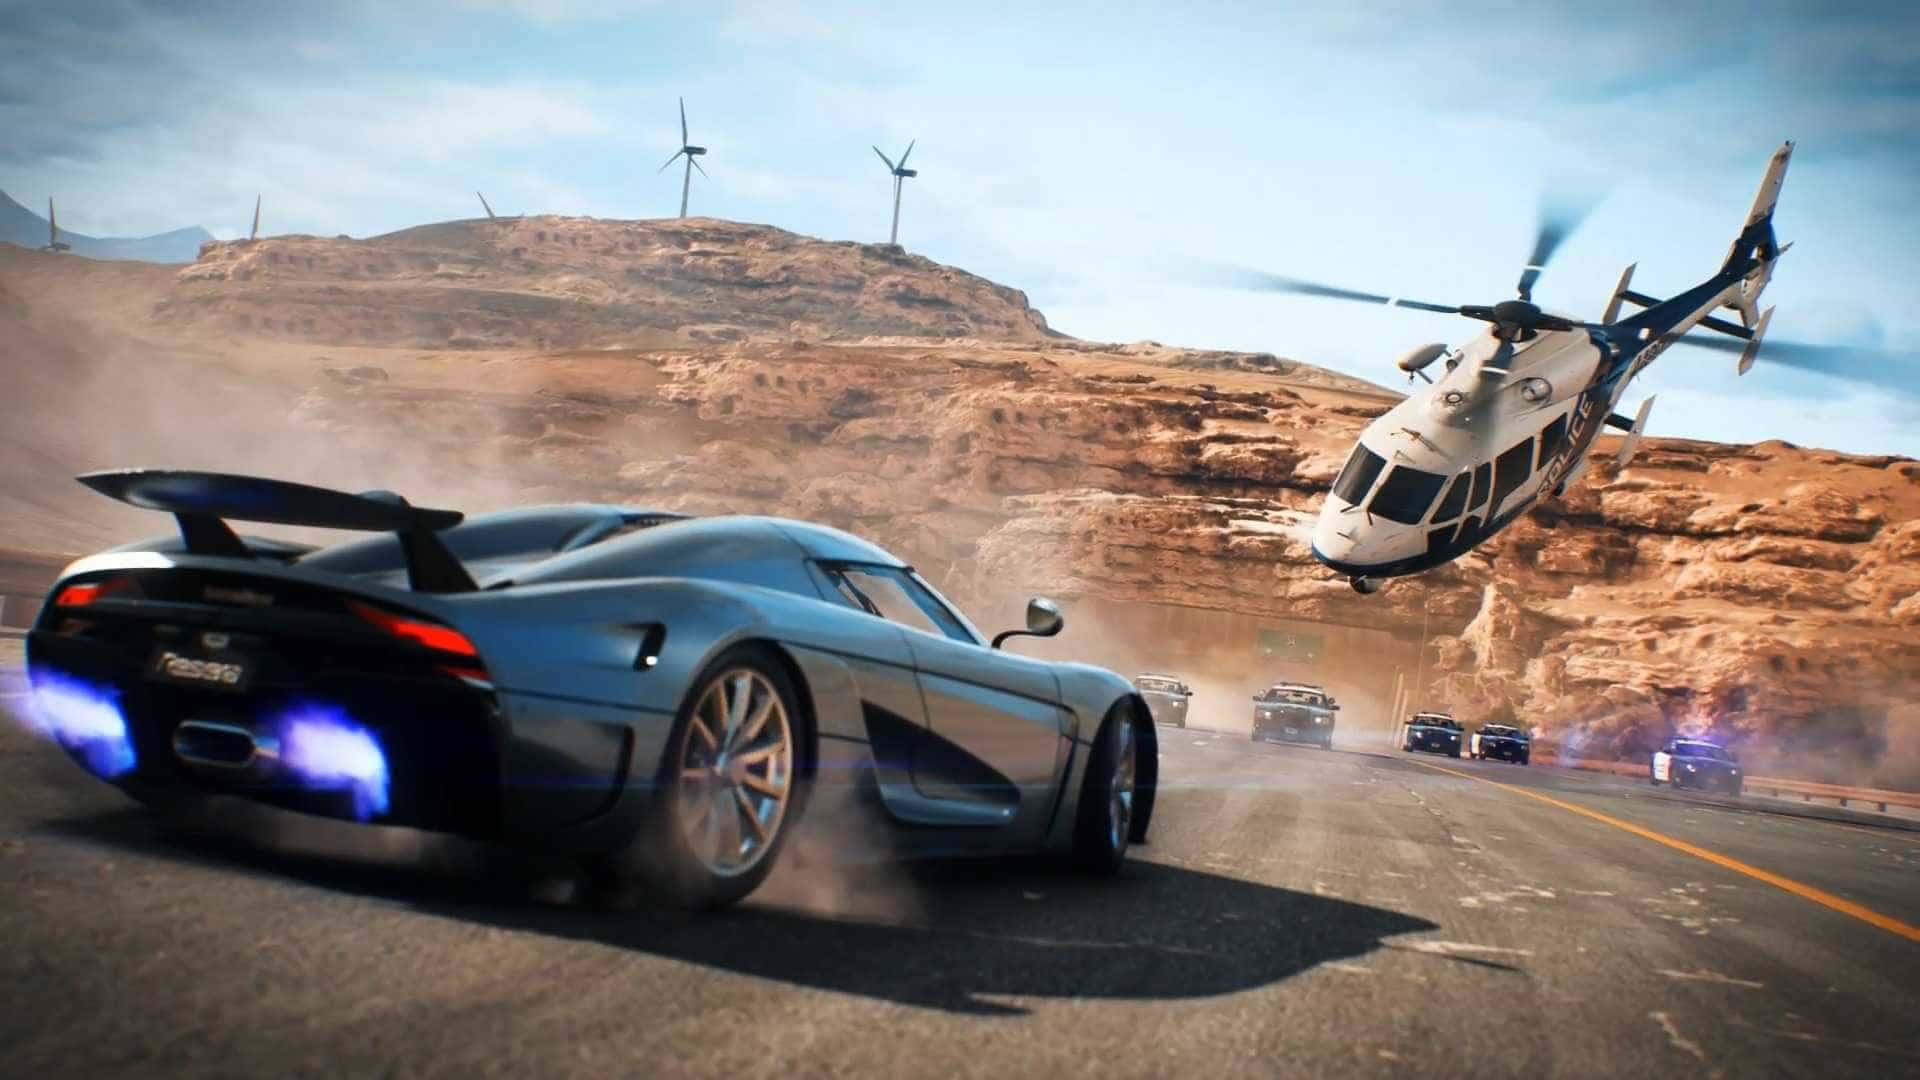 Este ano haverá um novo 'Need for Speed' e 'Plants vs. Zombies'